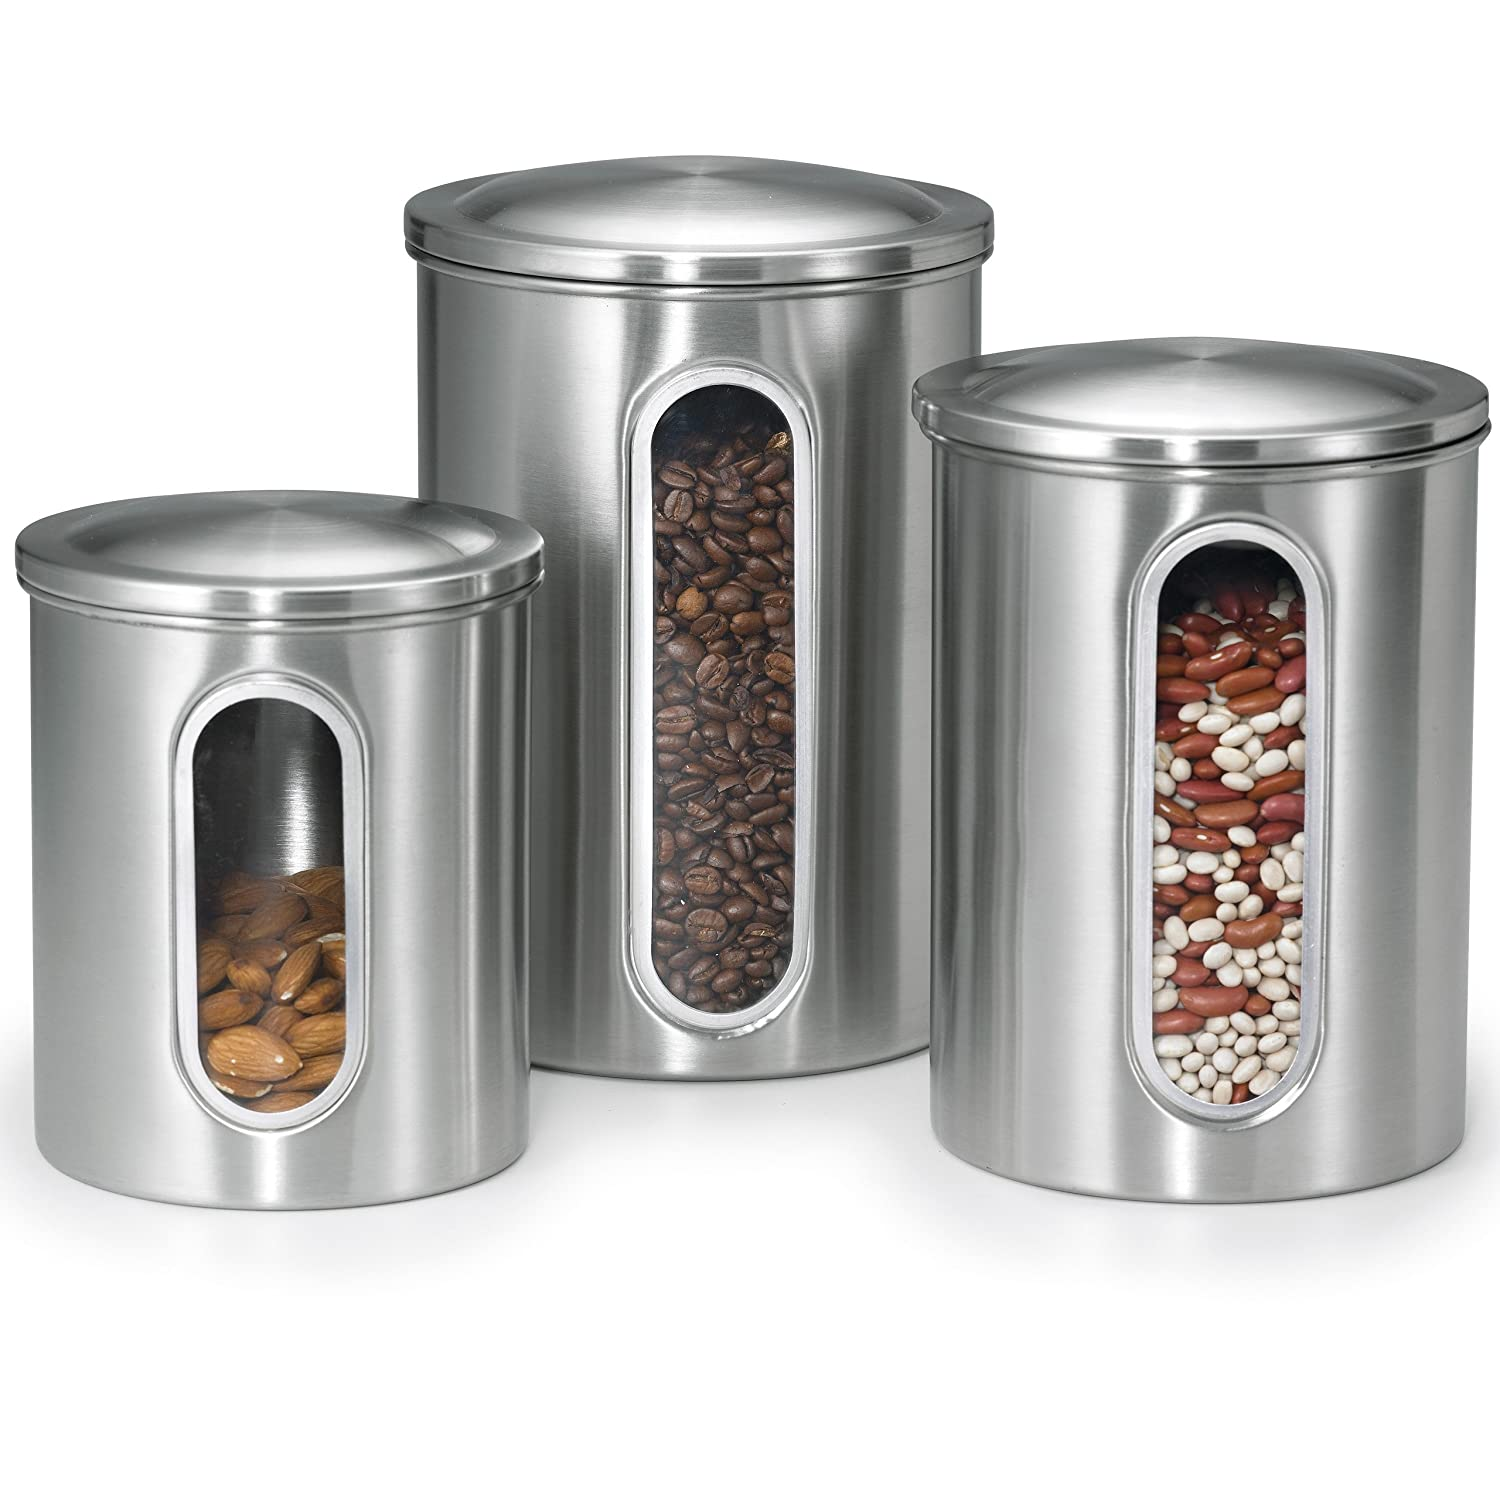 Amazon.com: Polder 3 Pc Food Storage Canister Set, Removable Air Tight  Lids, Stainless Steel, See Through Windows To View Content Levels, 2, 3 U0026 4  Qt Sizes: ...